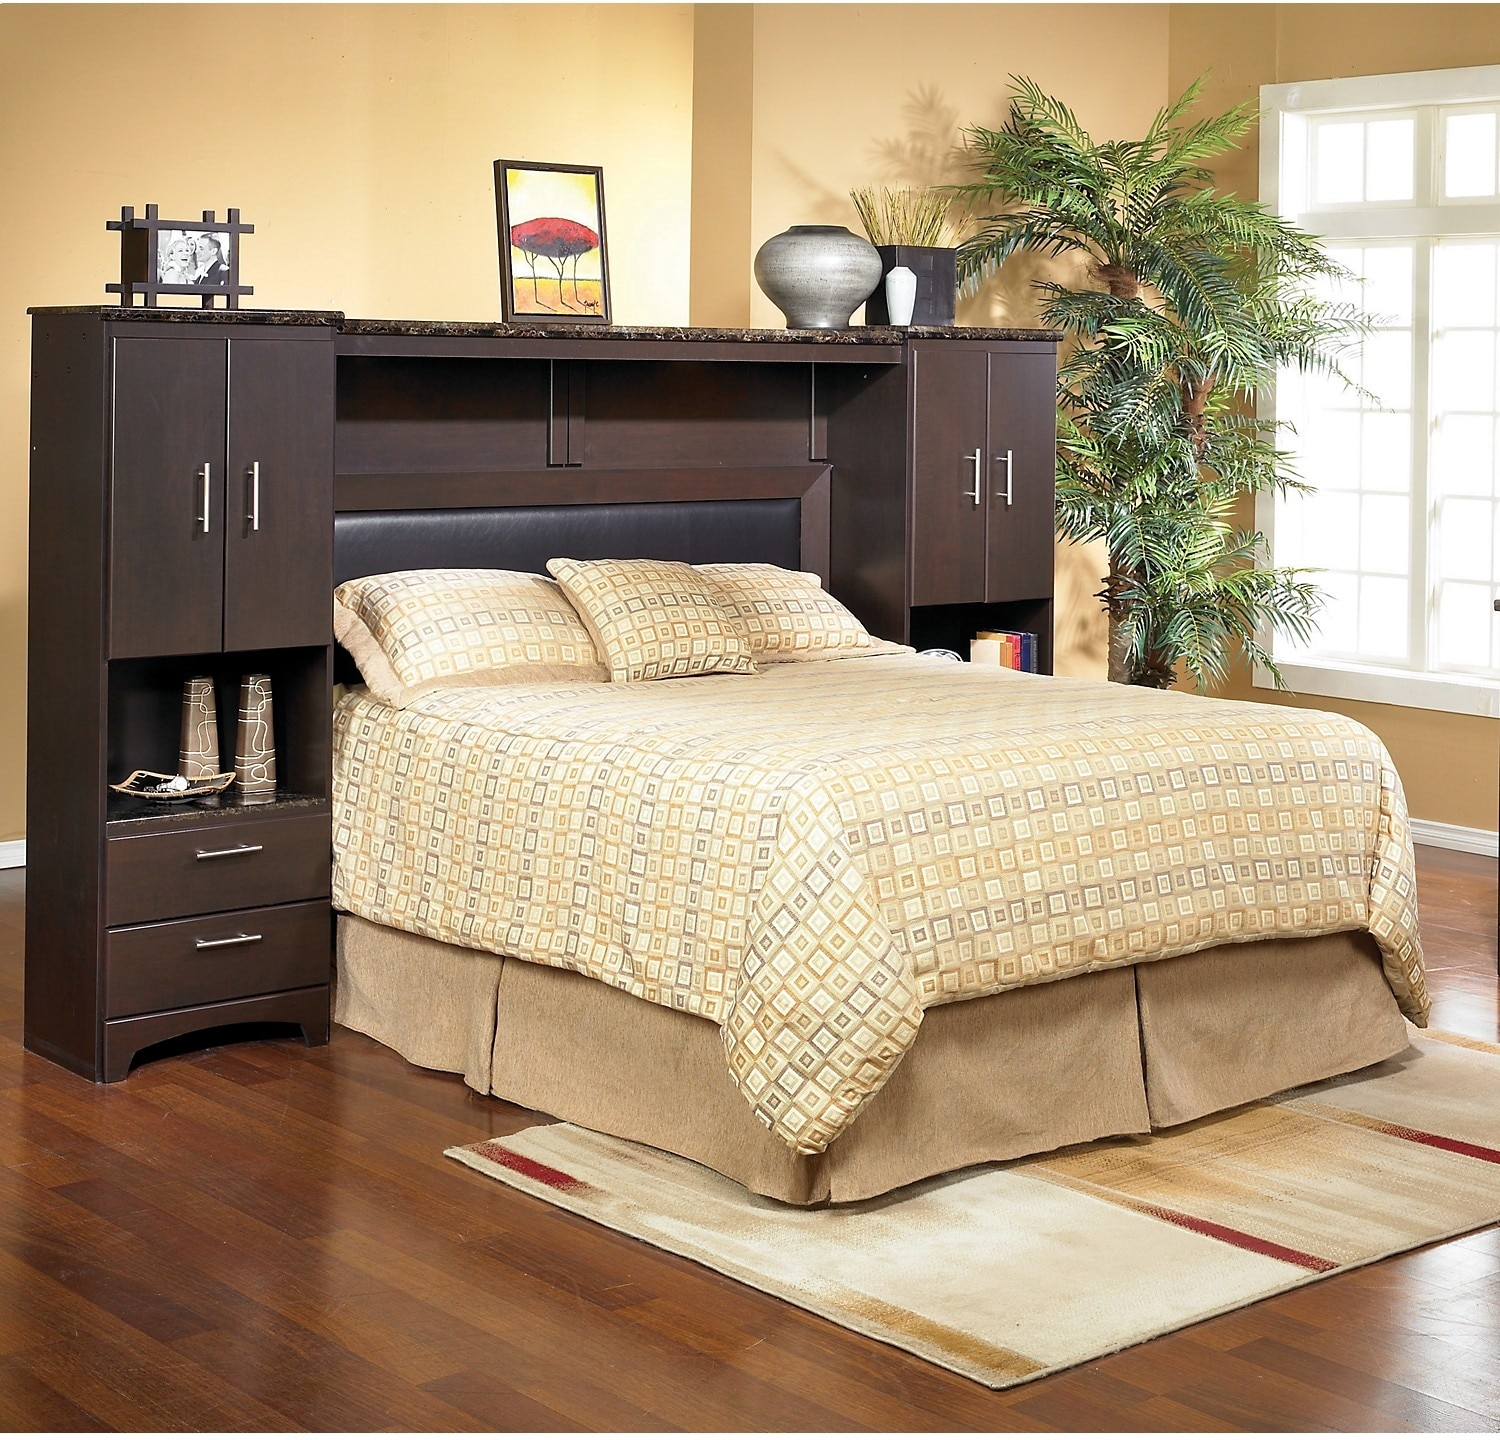 Bedroom Furniture - Oxford Queen Wall Bed with Piers